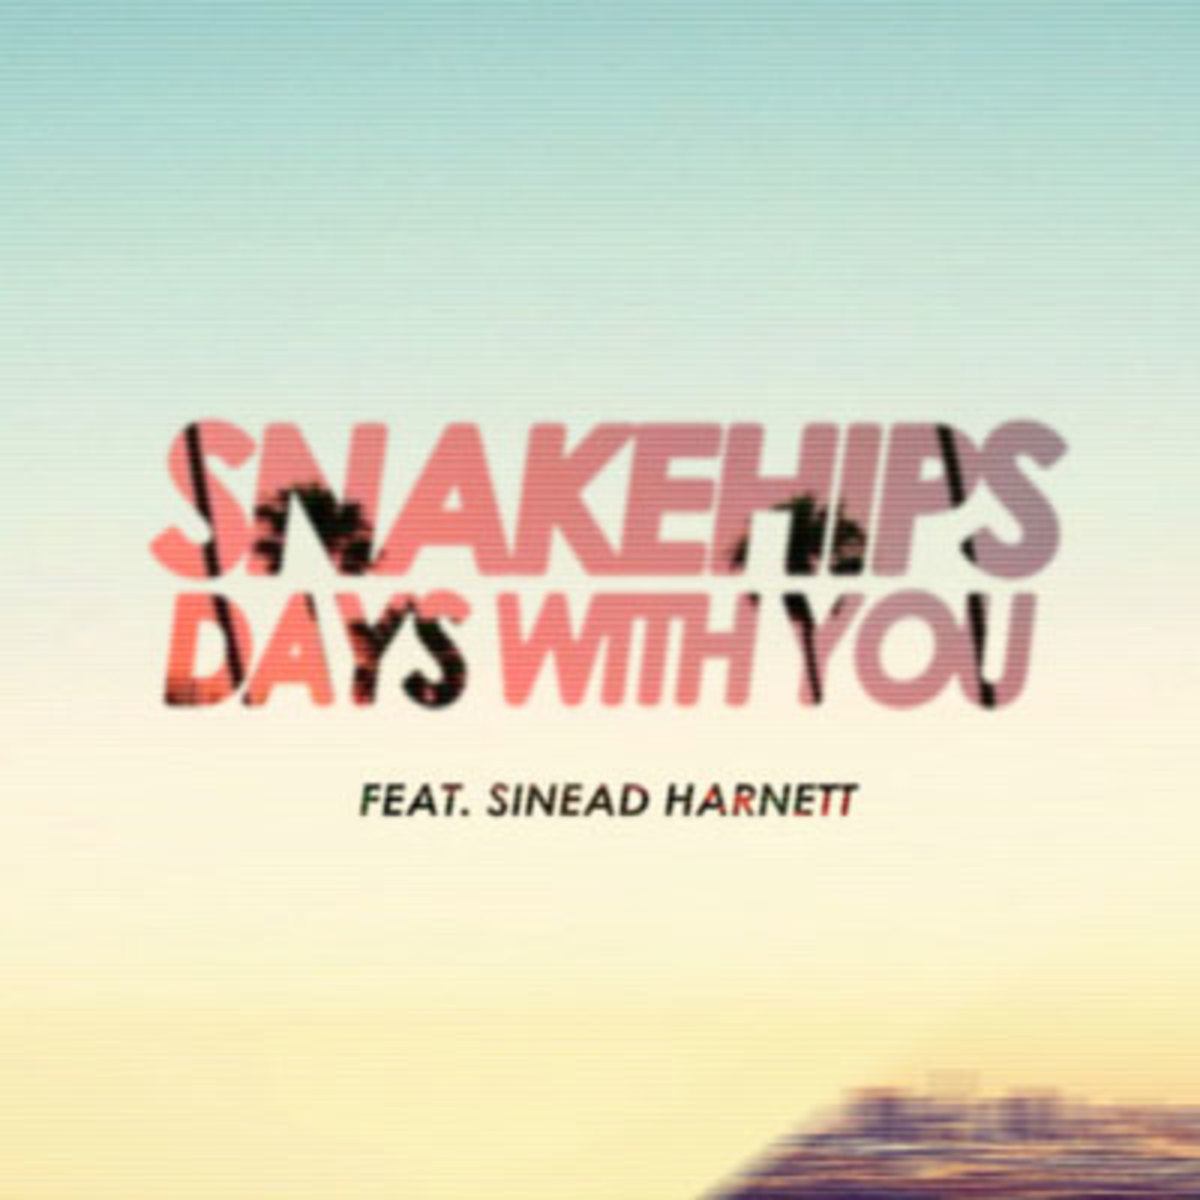 snakehips-dayswithyou.jpg